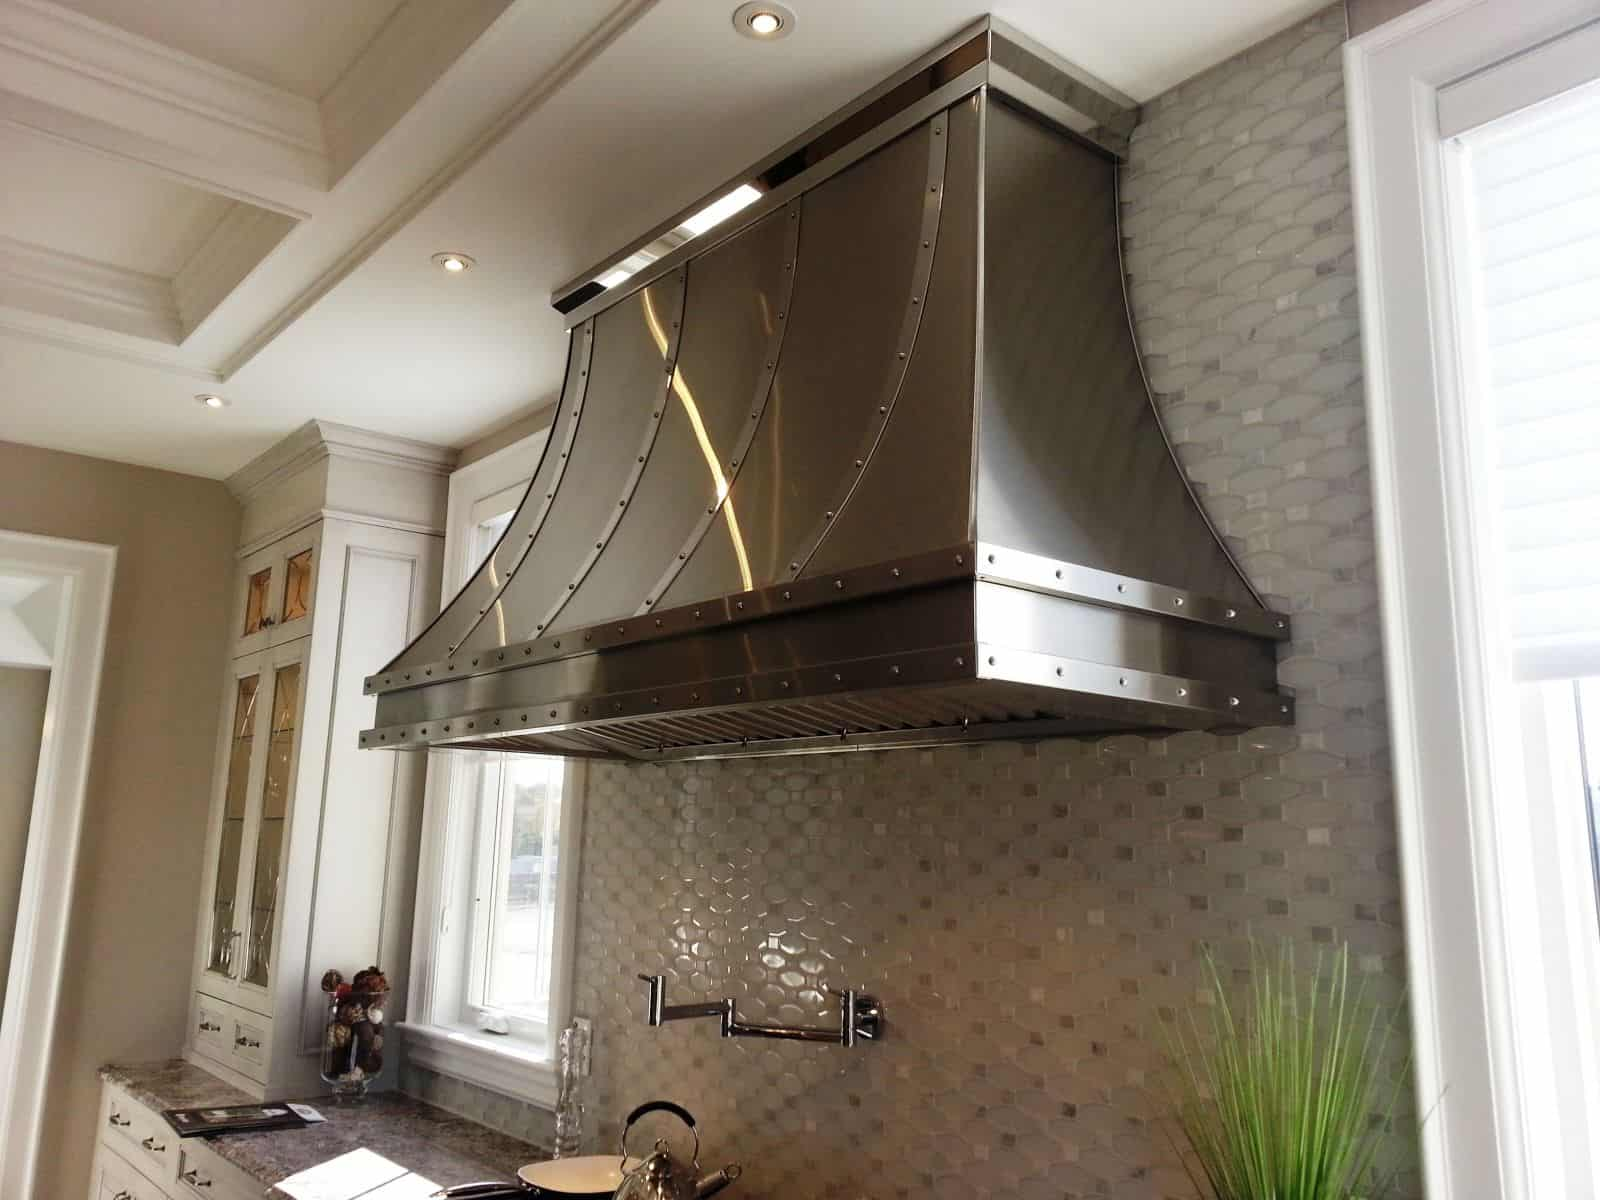 There is something very edgy yet country chic about having a metal hood in your kitchen.